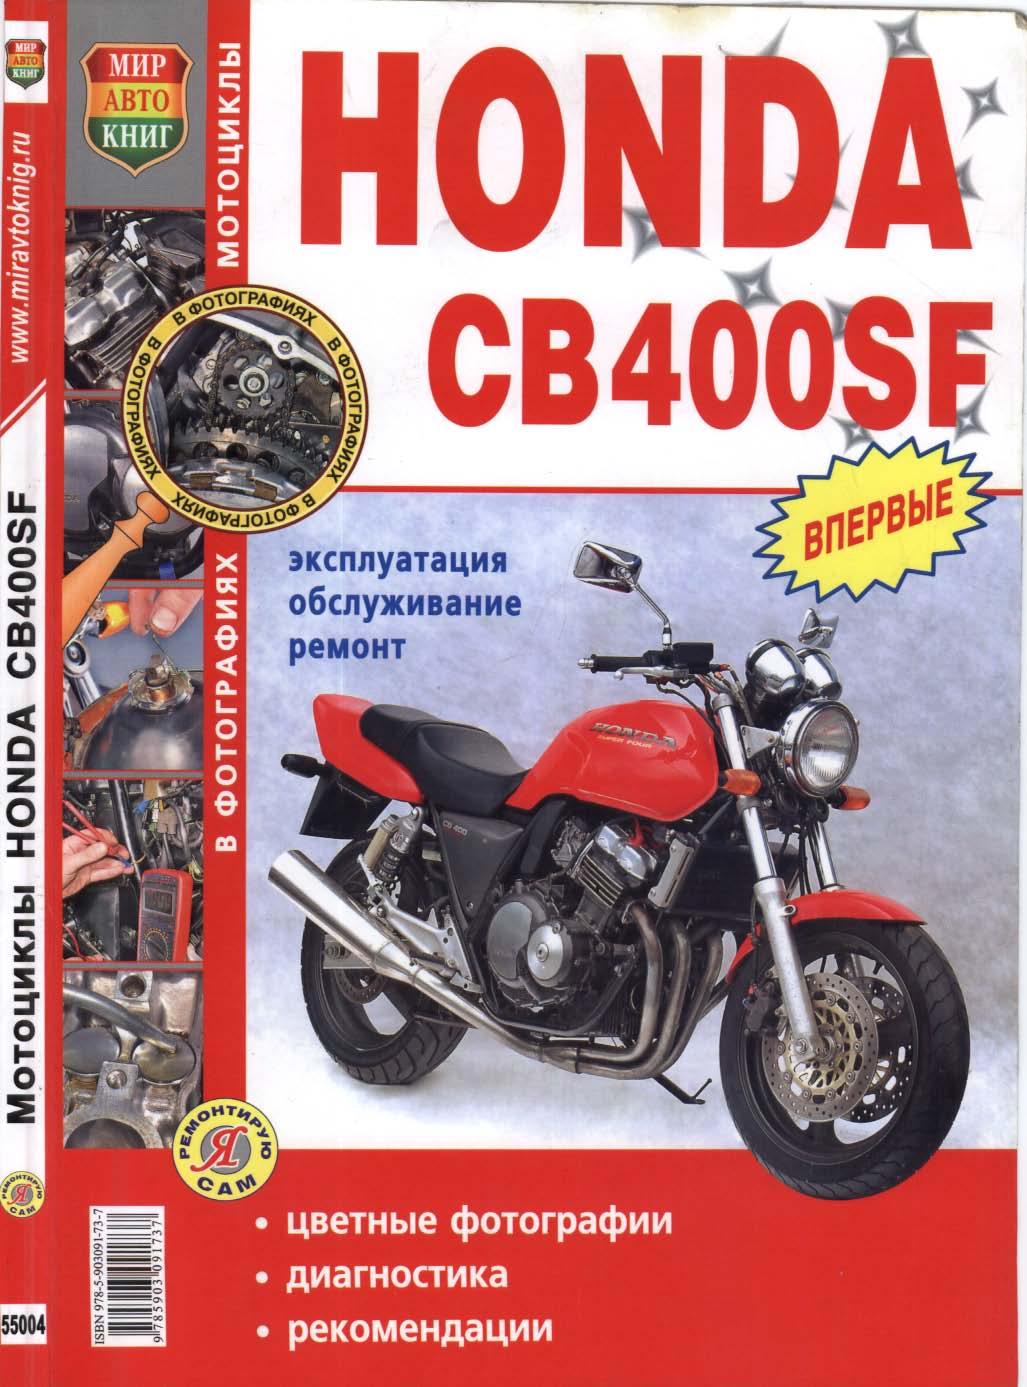 Book about the Honda CB400SF (2008) (Russian)